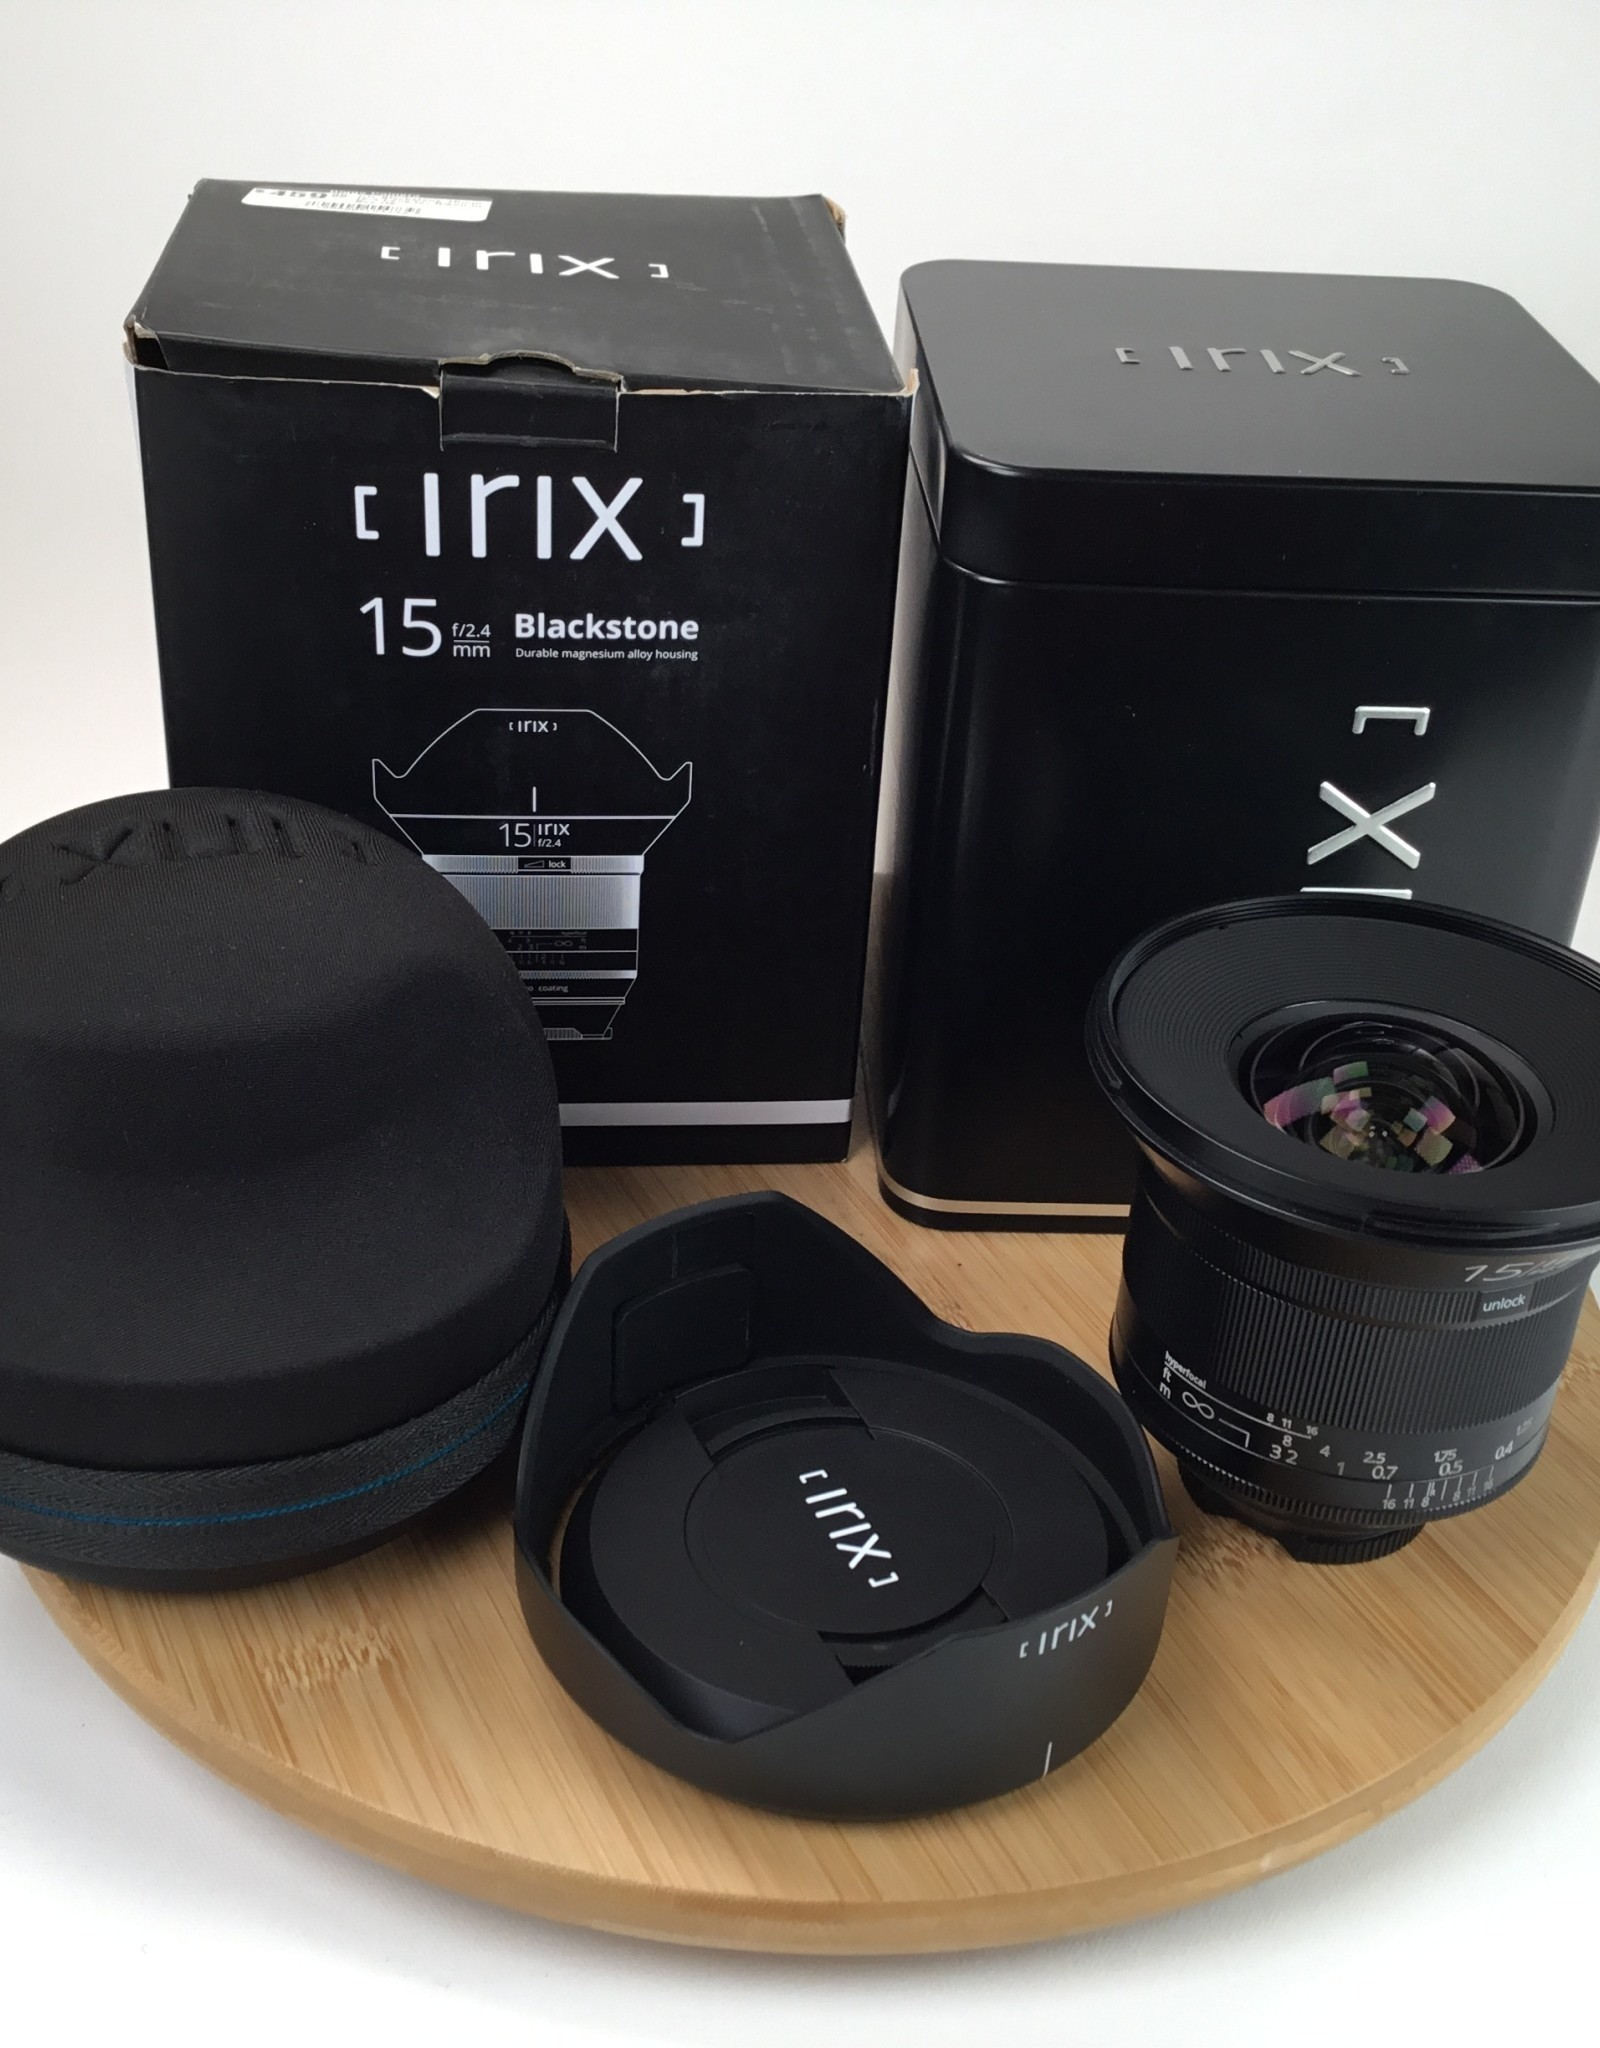 Irix Blackstone 15mm f2.4 Lens for Nikon in Box Used  LN